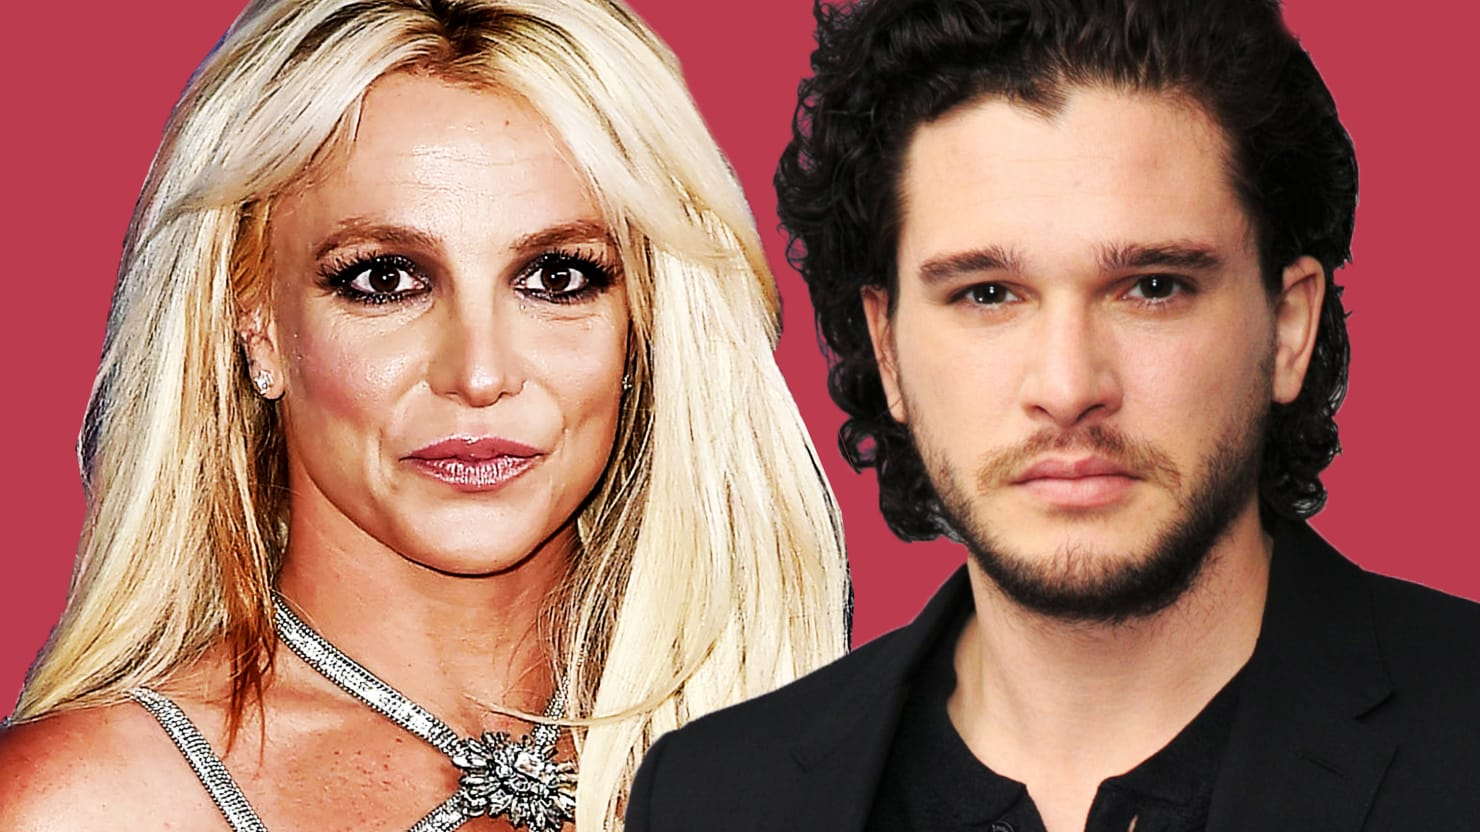 Kit Harington, Britney Spears, and Tabloids' Toxic Obsession With Celebrity Mental Health